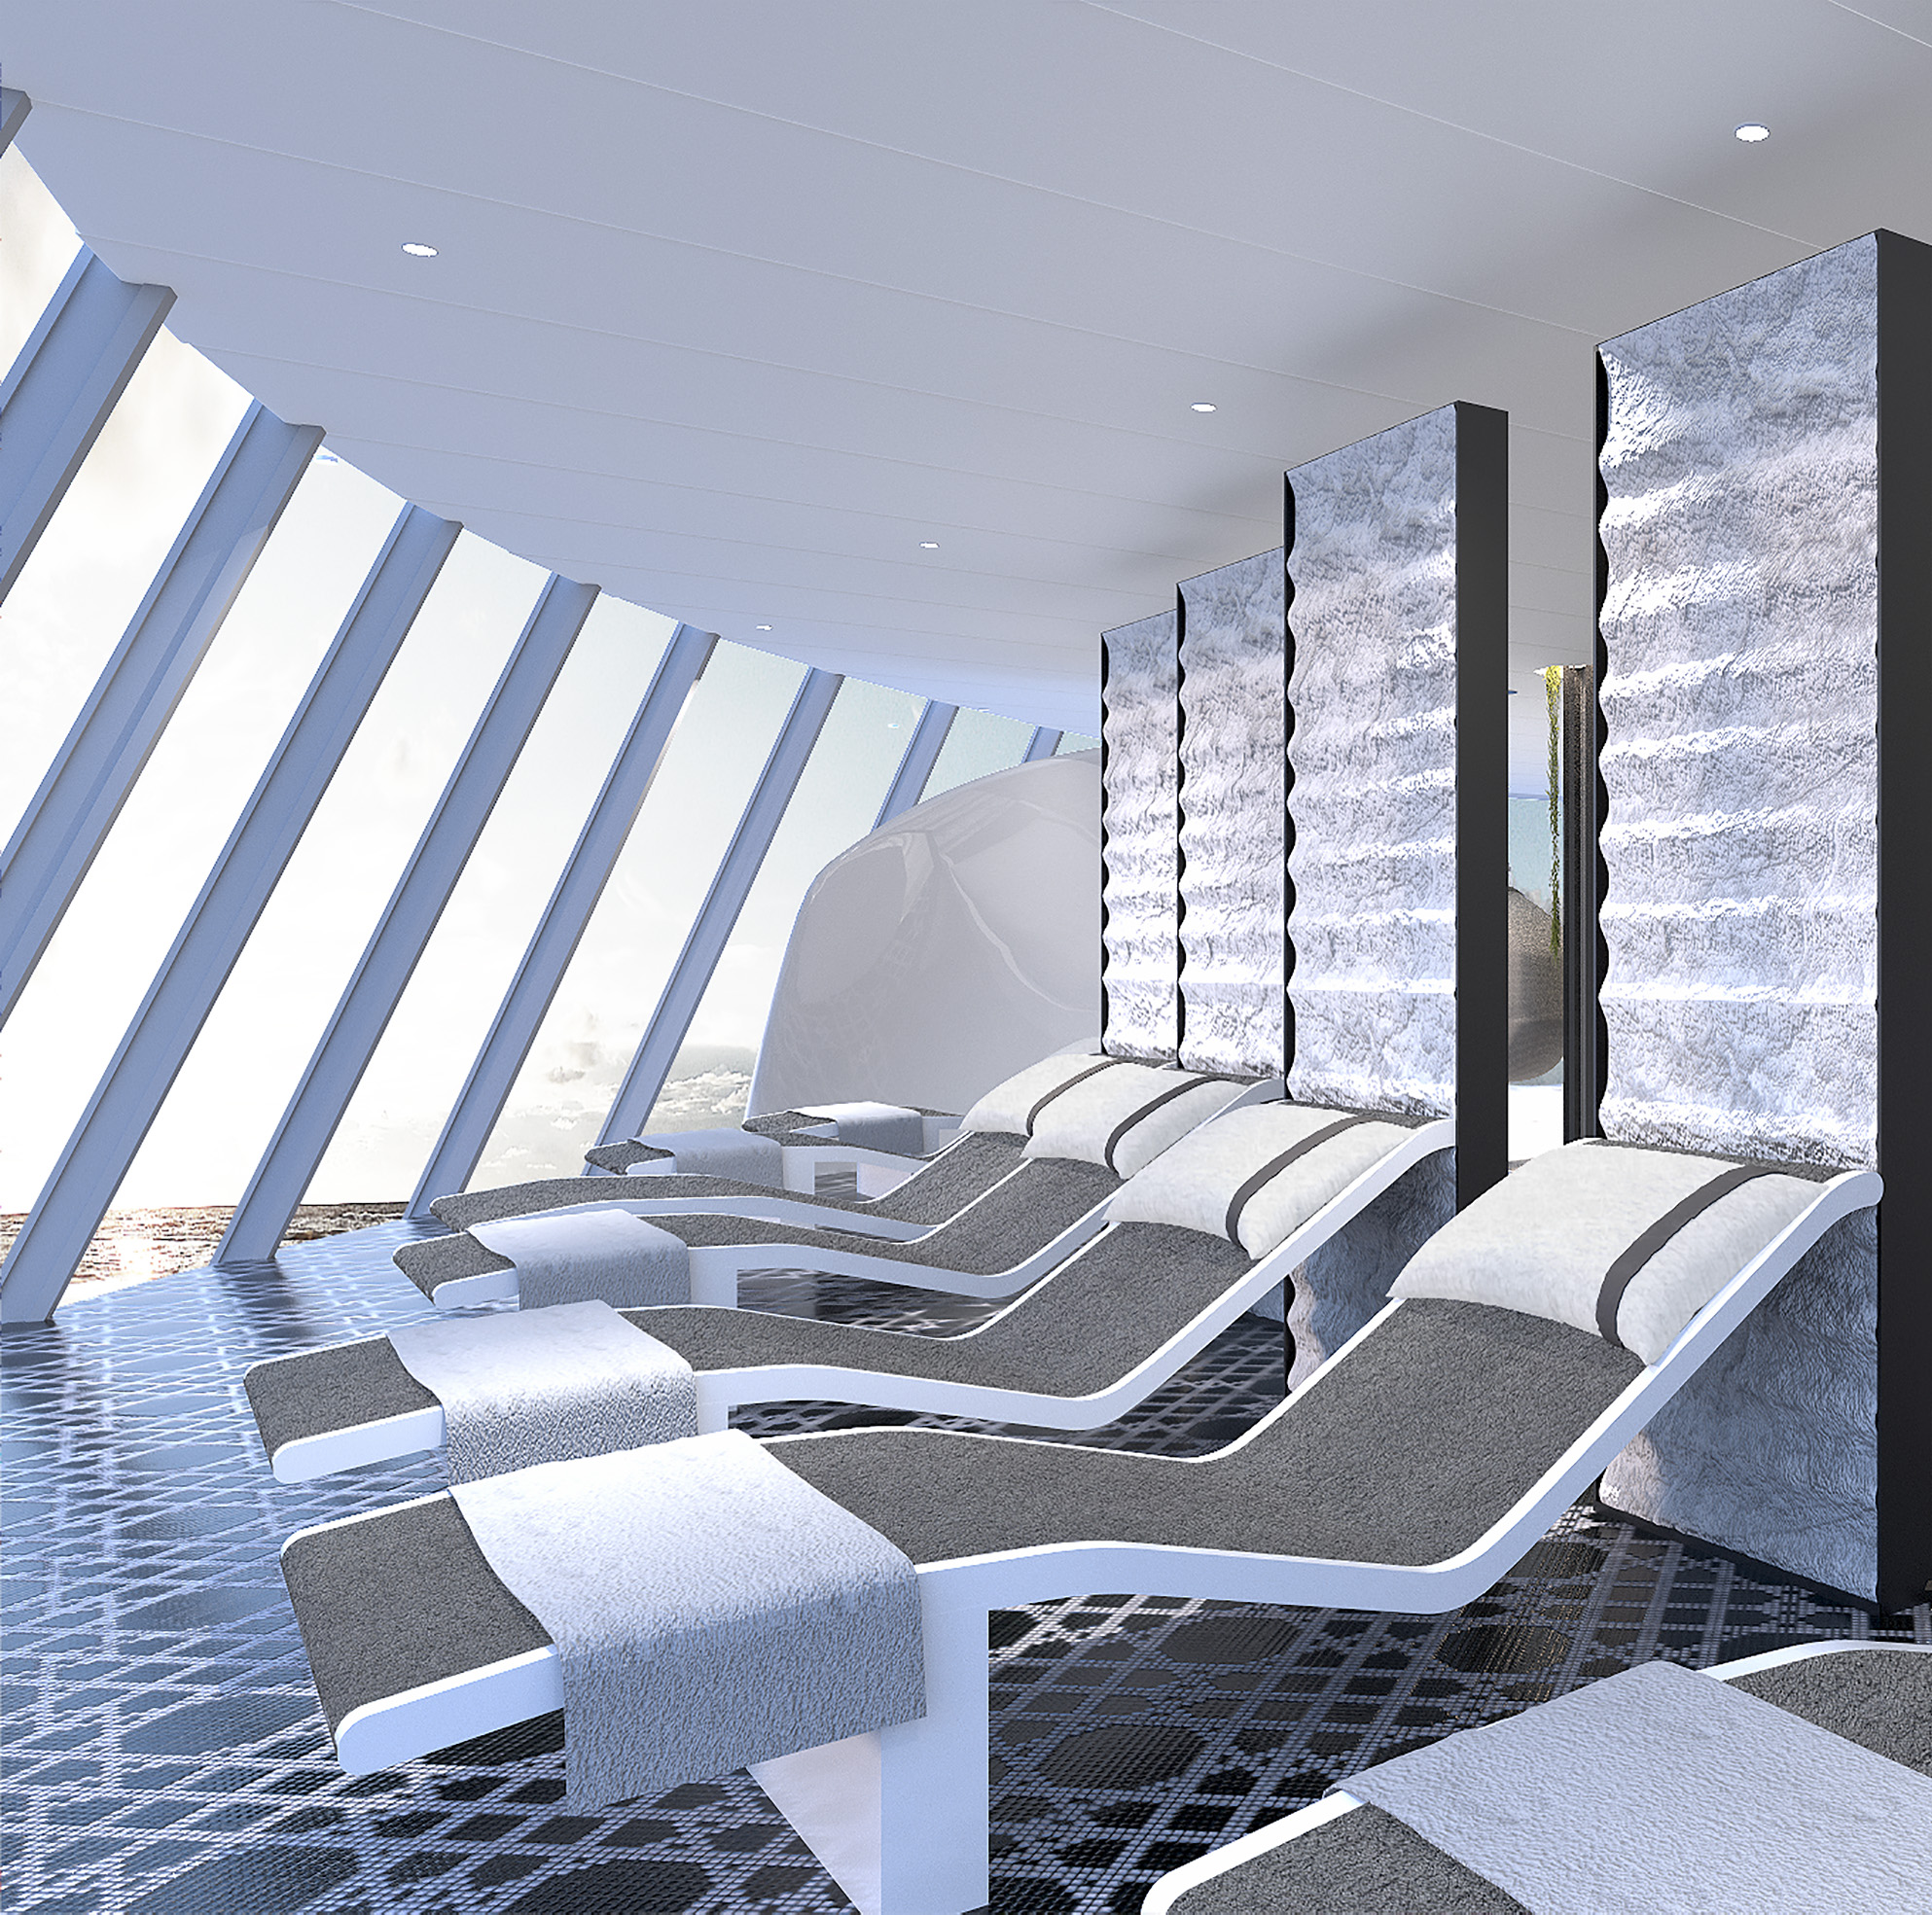 Right next to the floating chairs and offering the same panoramic views are the 11 heated tile loungers, making this space the perfect zen zone to relax after treatments at The Spa on Celebrity Edge.